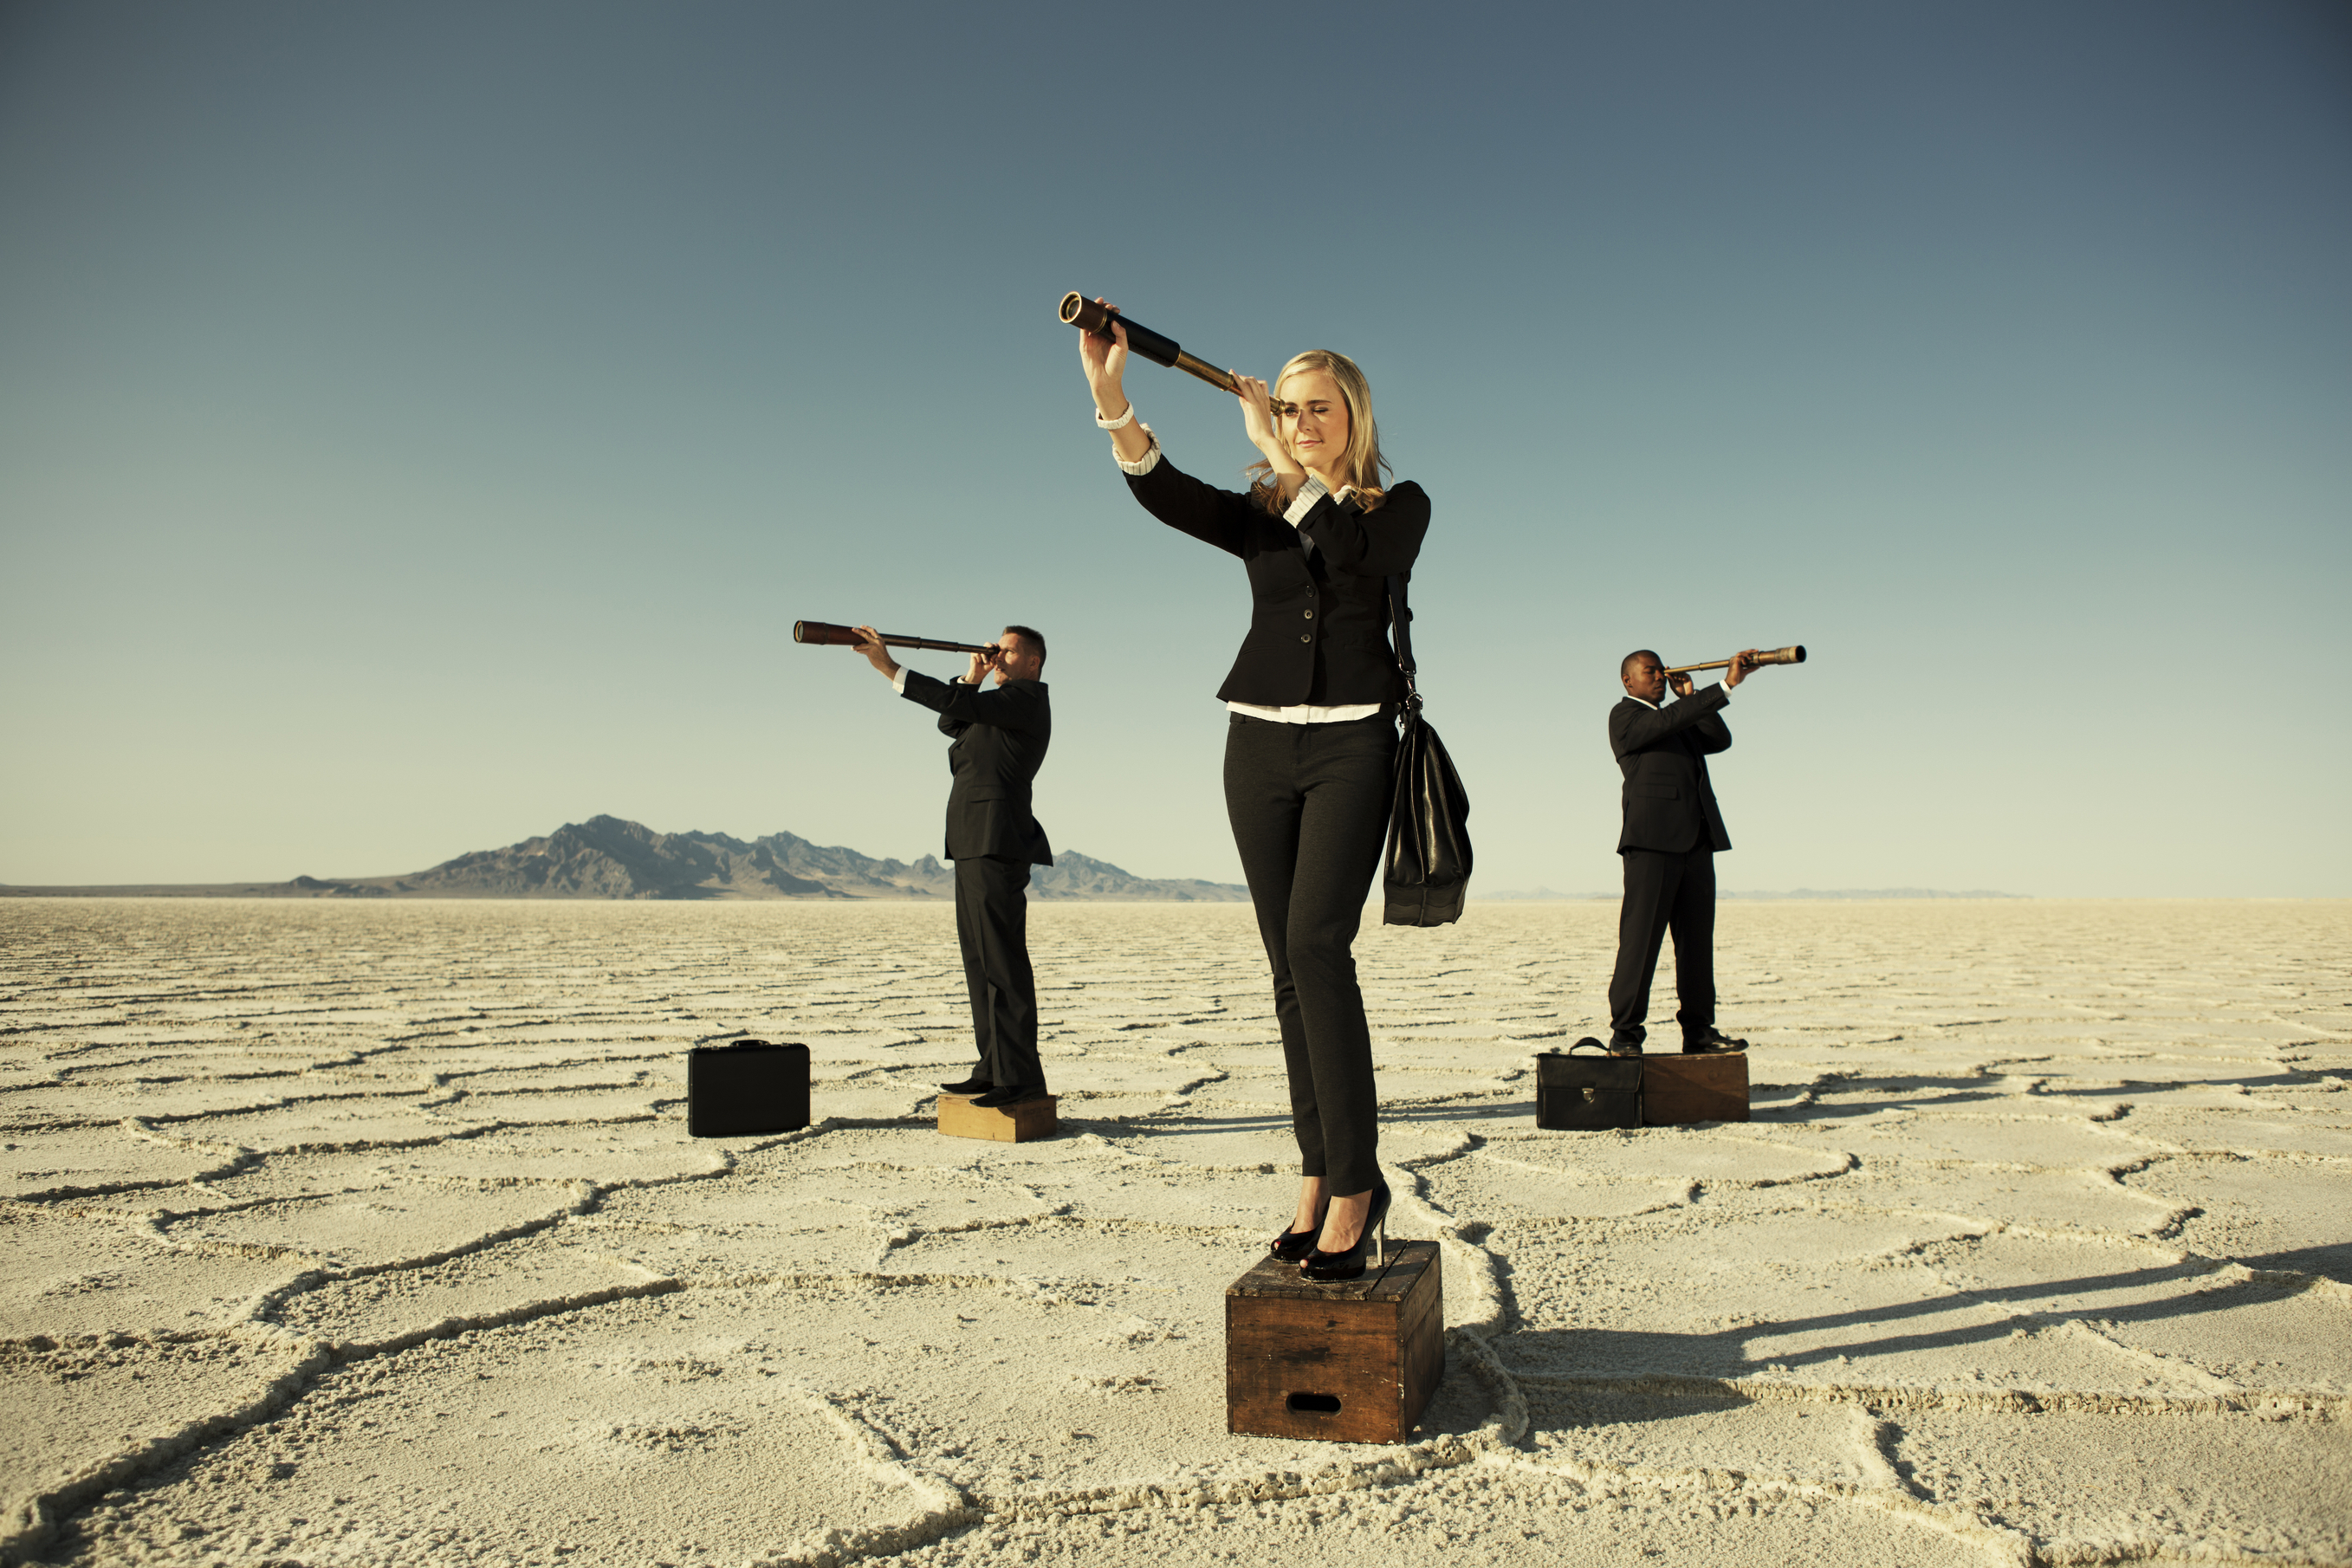 A businesswoman leads her team in finding future prosperity.